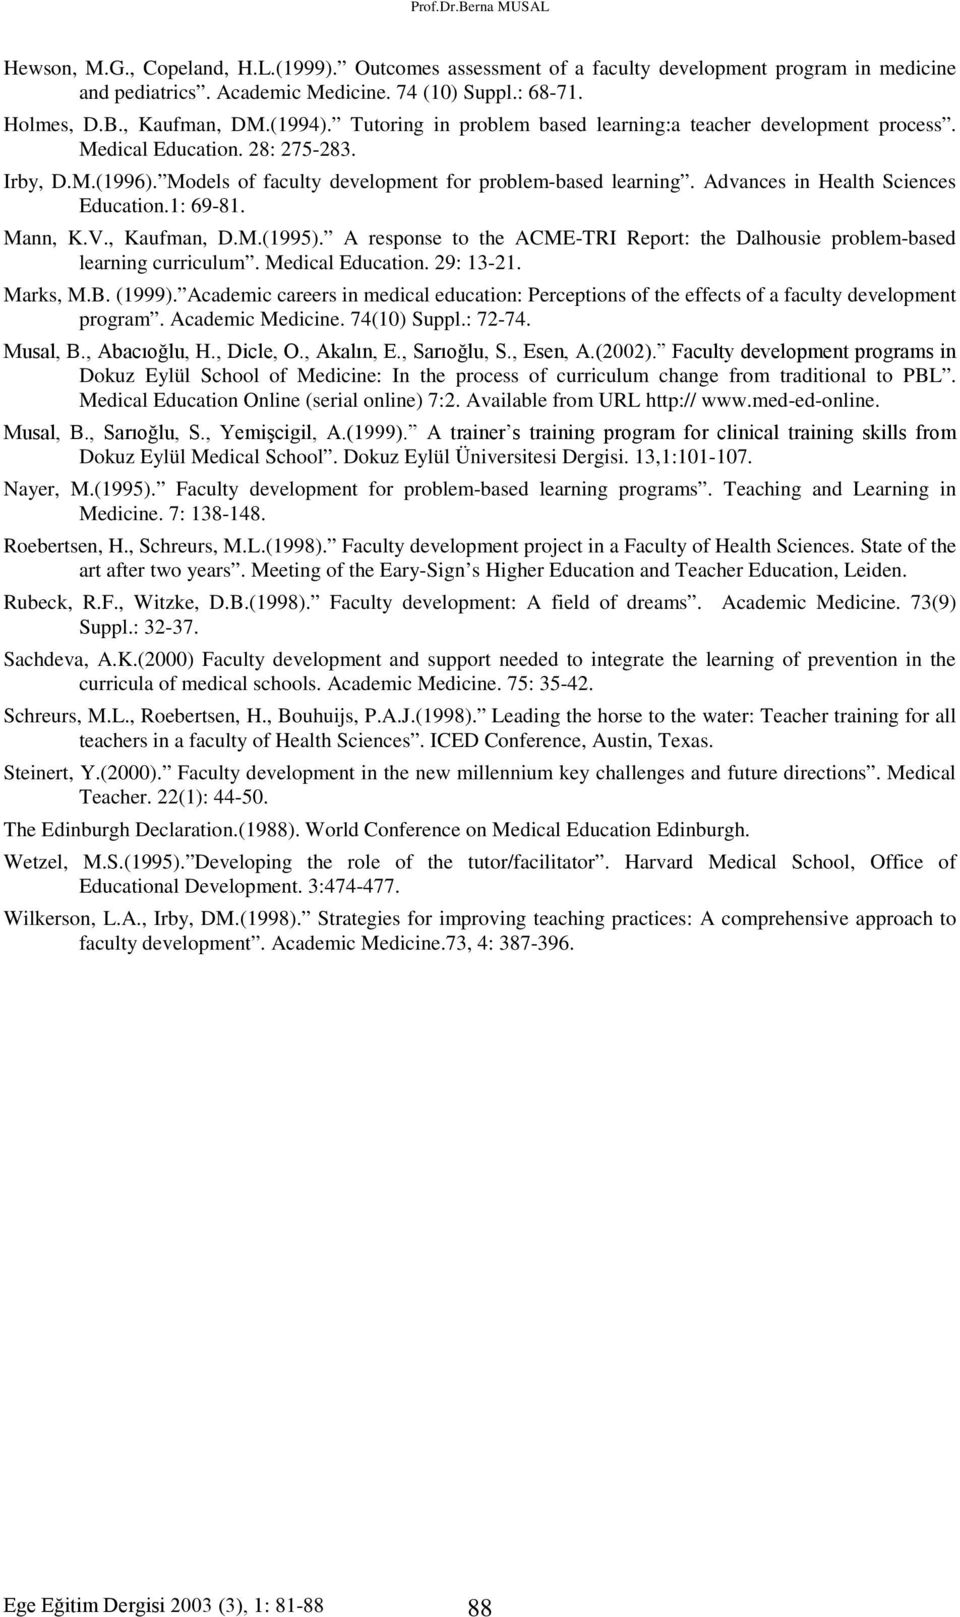 Advances in Health Sciences Education.1: 69-81. Mann, K.V., Kaufman, D.M.(1995). A response to the ACME-TRI Report: the Dalhousie problem-based learning curriculum. Medical Education. 29: 13-21.